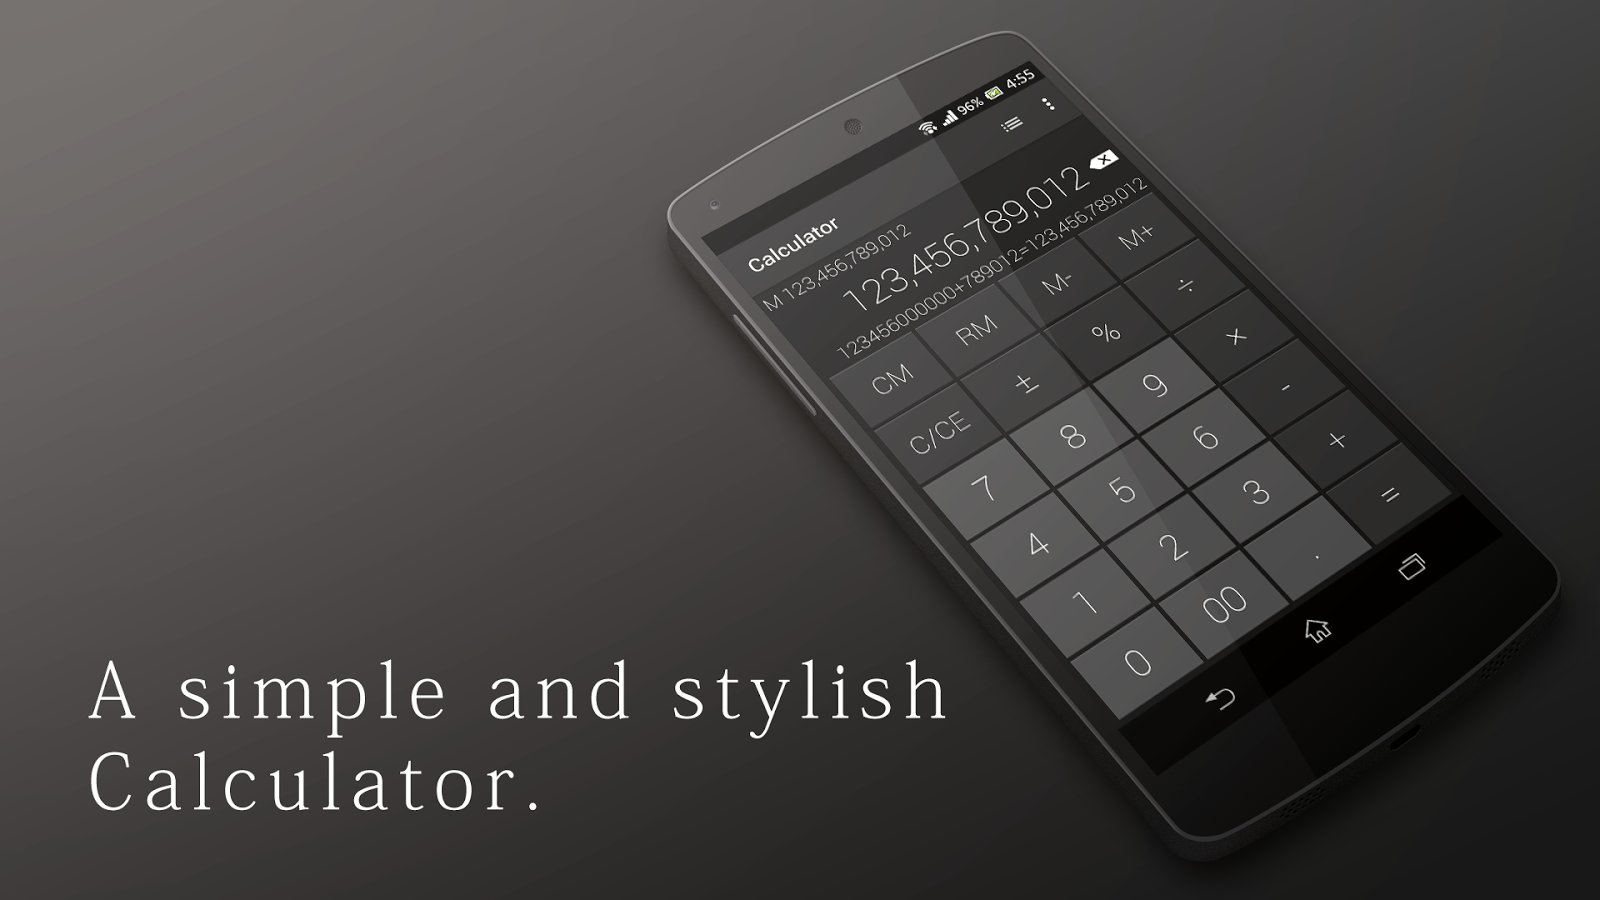 Calculator - Simple & Stylish Screenshot 13